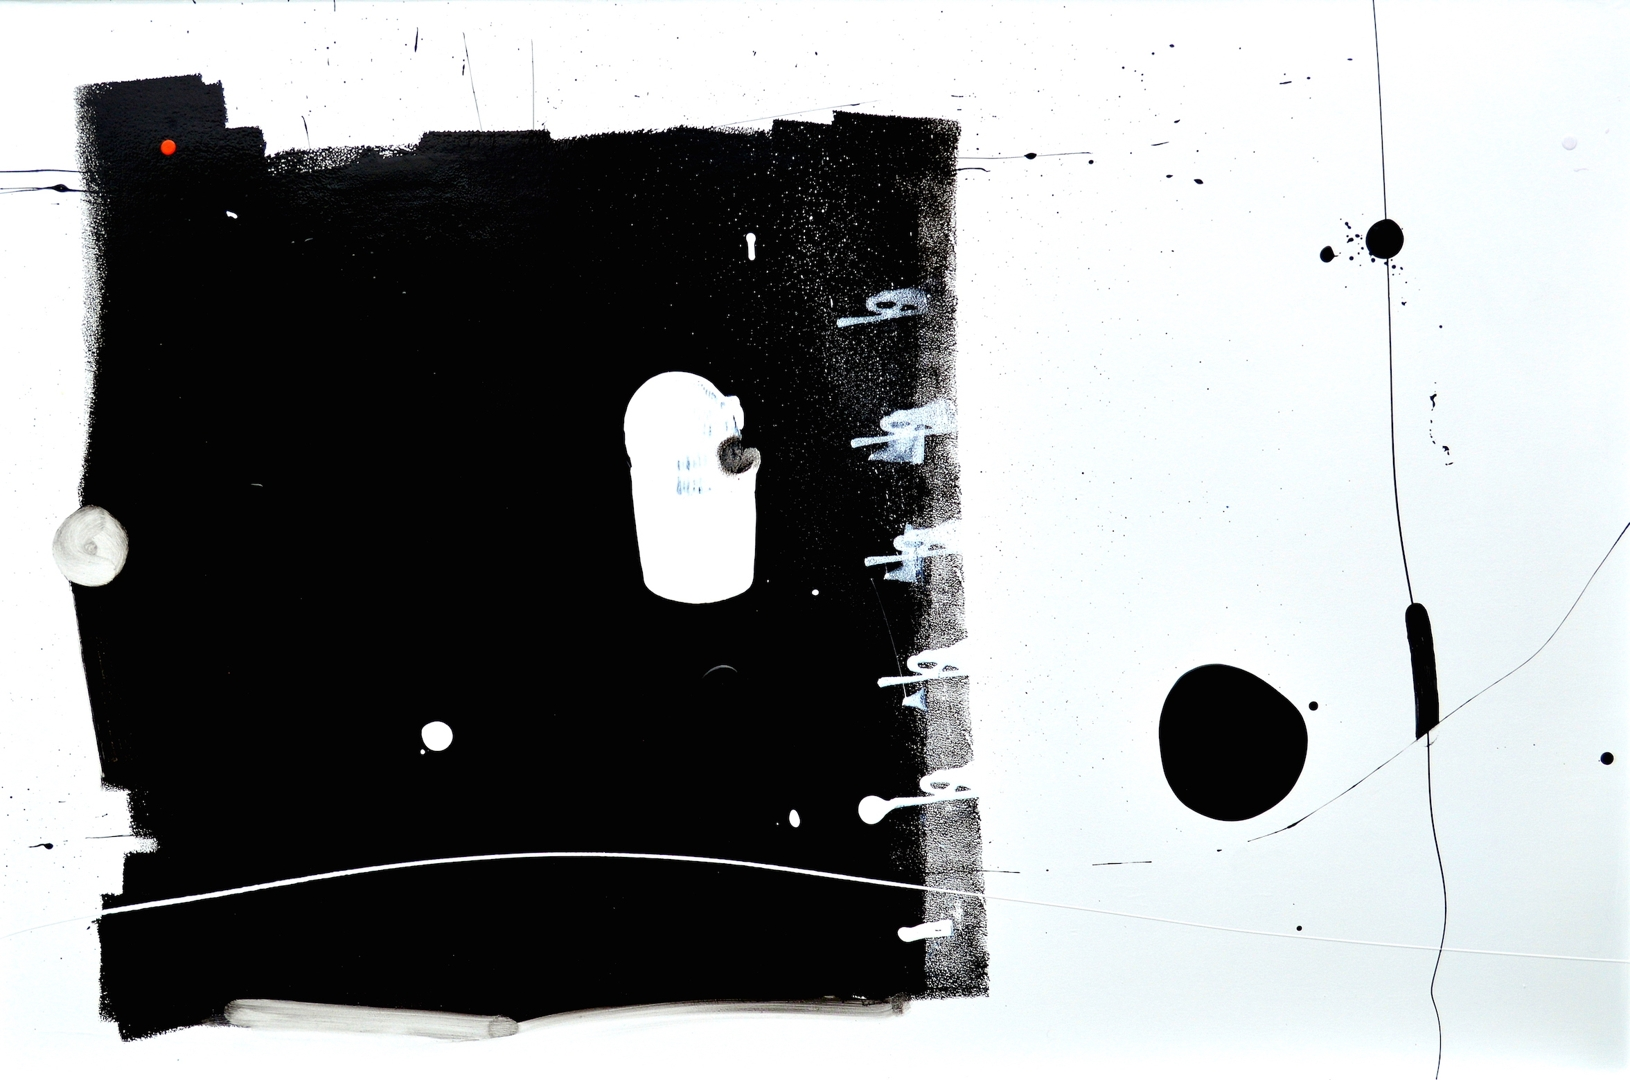 Curious Big Black Square Running Away from Black Blob Over There Painting image